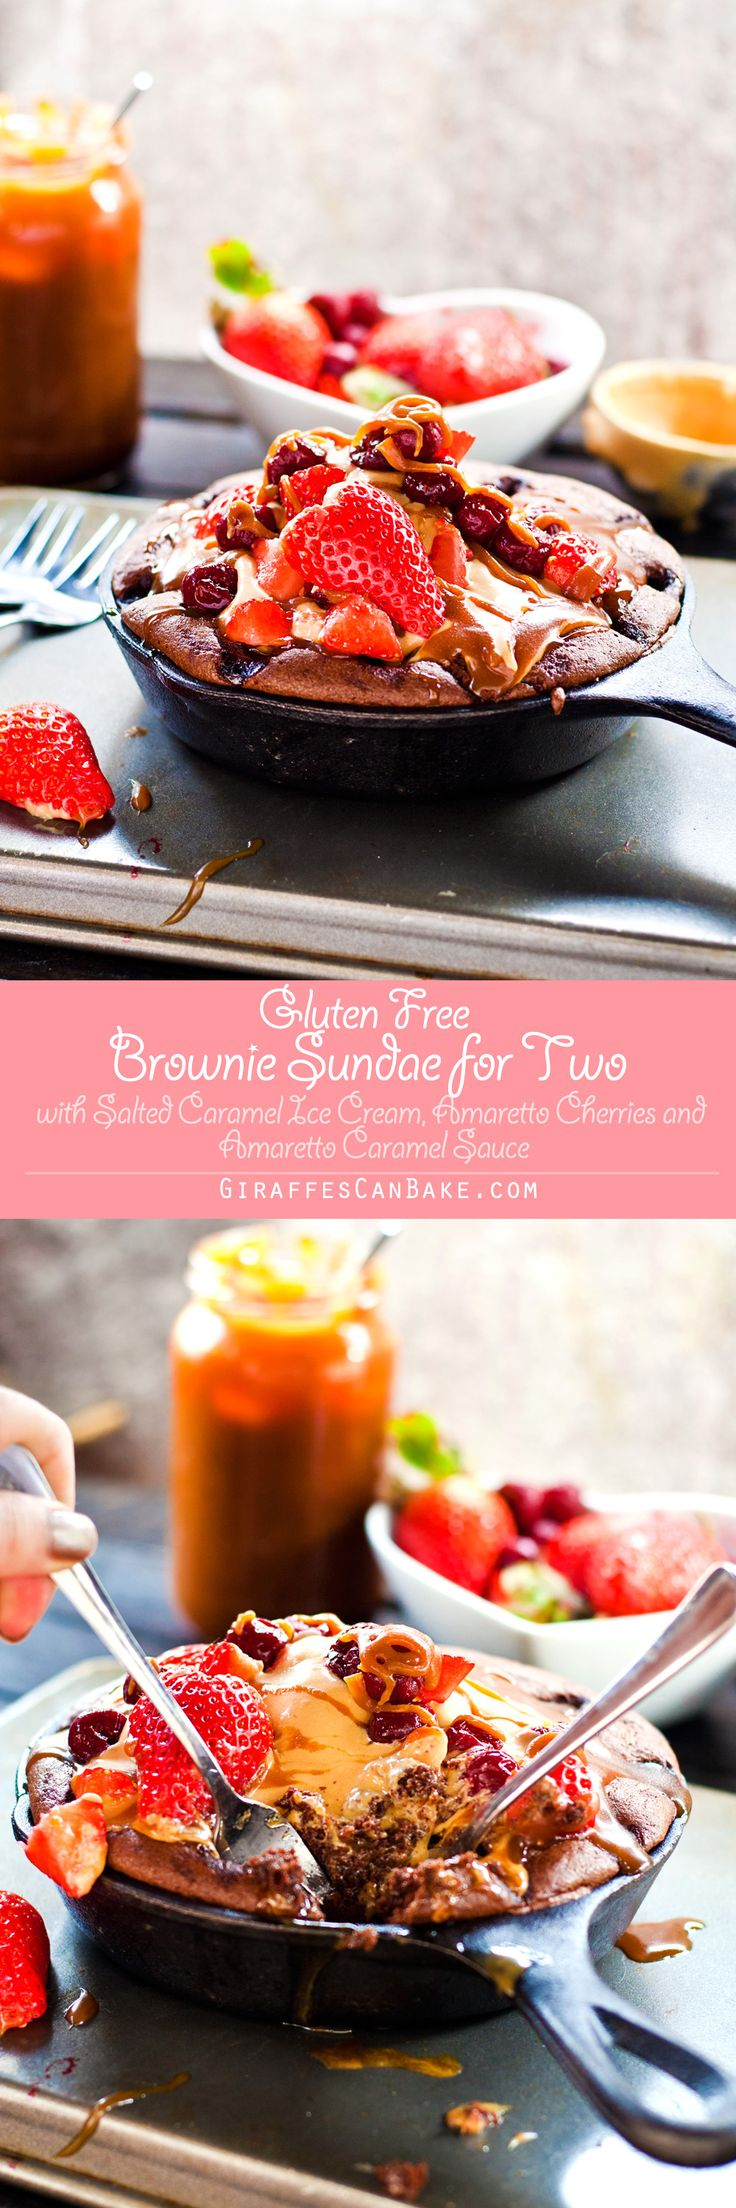 Brownie Sundae for Two - The most delicious way to wow your Valentine this year! This Gluten Free Skillet Brownie Sundae is made especially for two to share (loving gazes across the sundae are optional). Amaretto soaked cherries are baked into a fudgy, chocolate skillet brownie, which is then topped with an easy, no-churn salted caramel ice cream and amaretto caramel sauce. It's then finished off with delicious fresh berries for the most amazing brownie sundae you could ever want. And the…